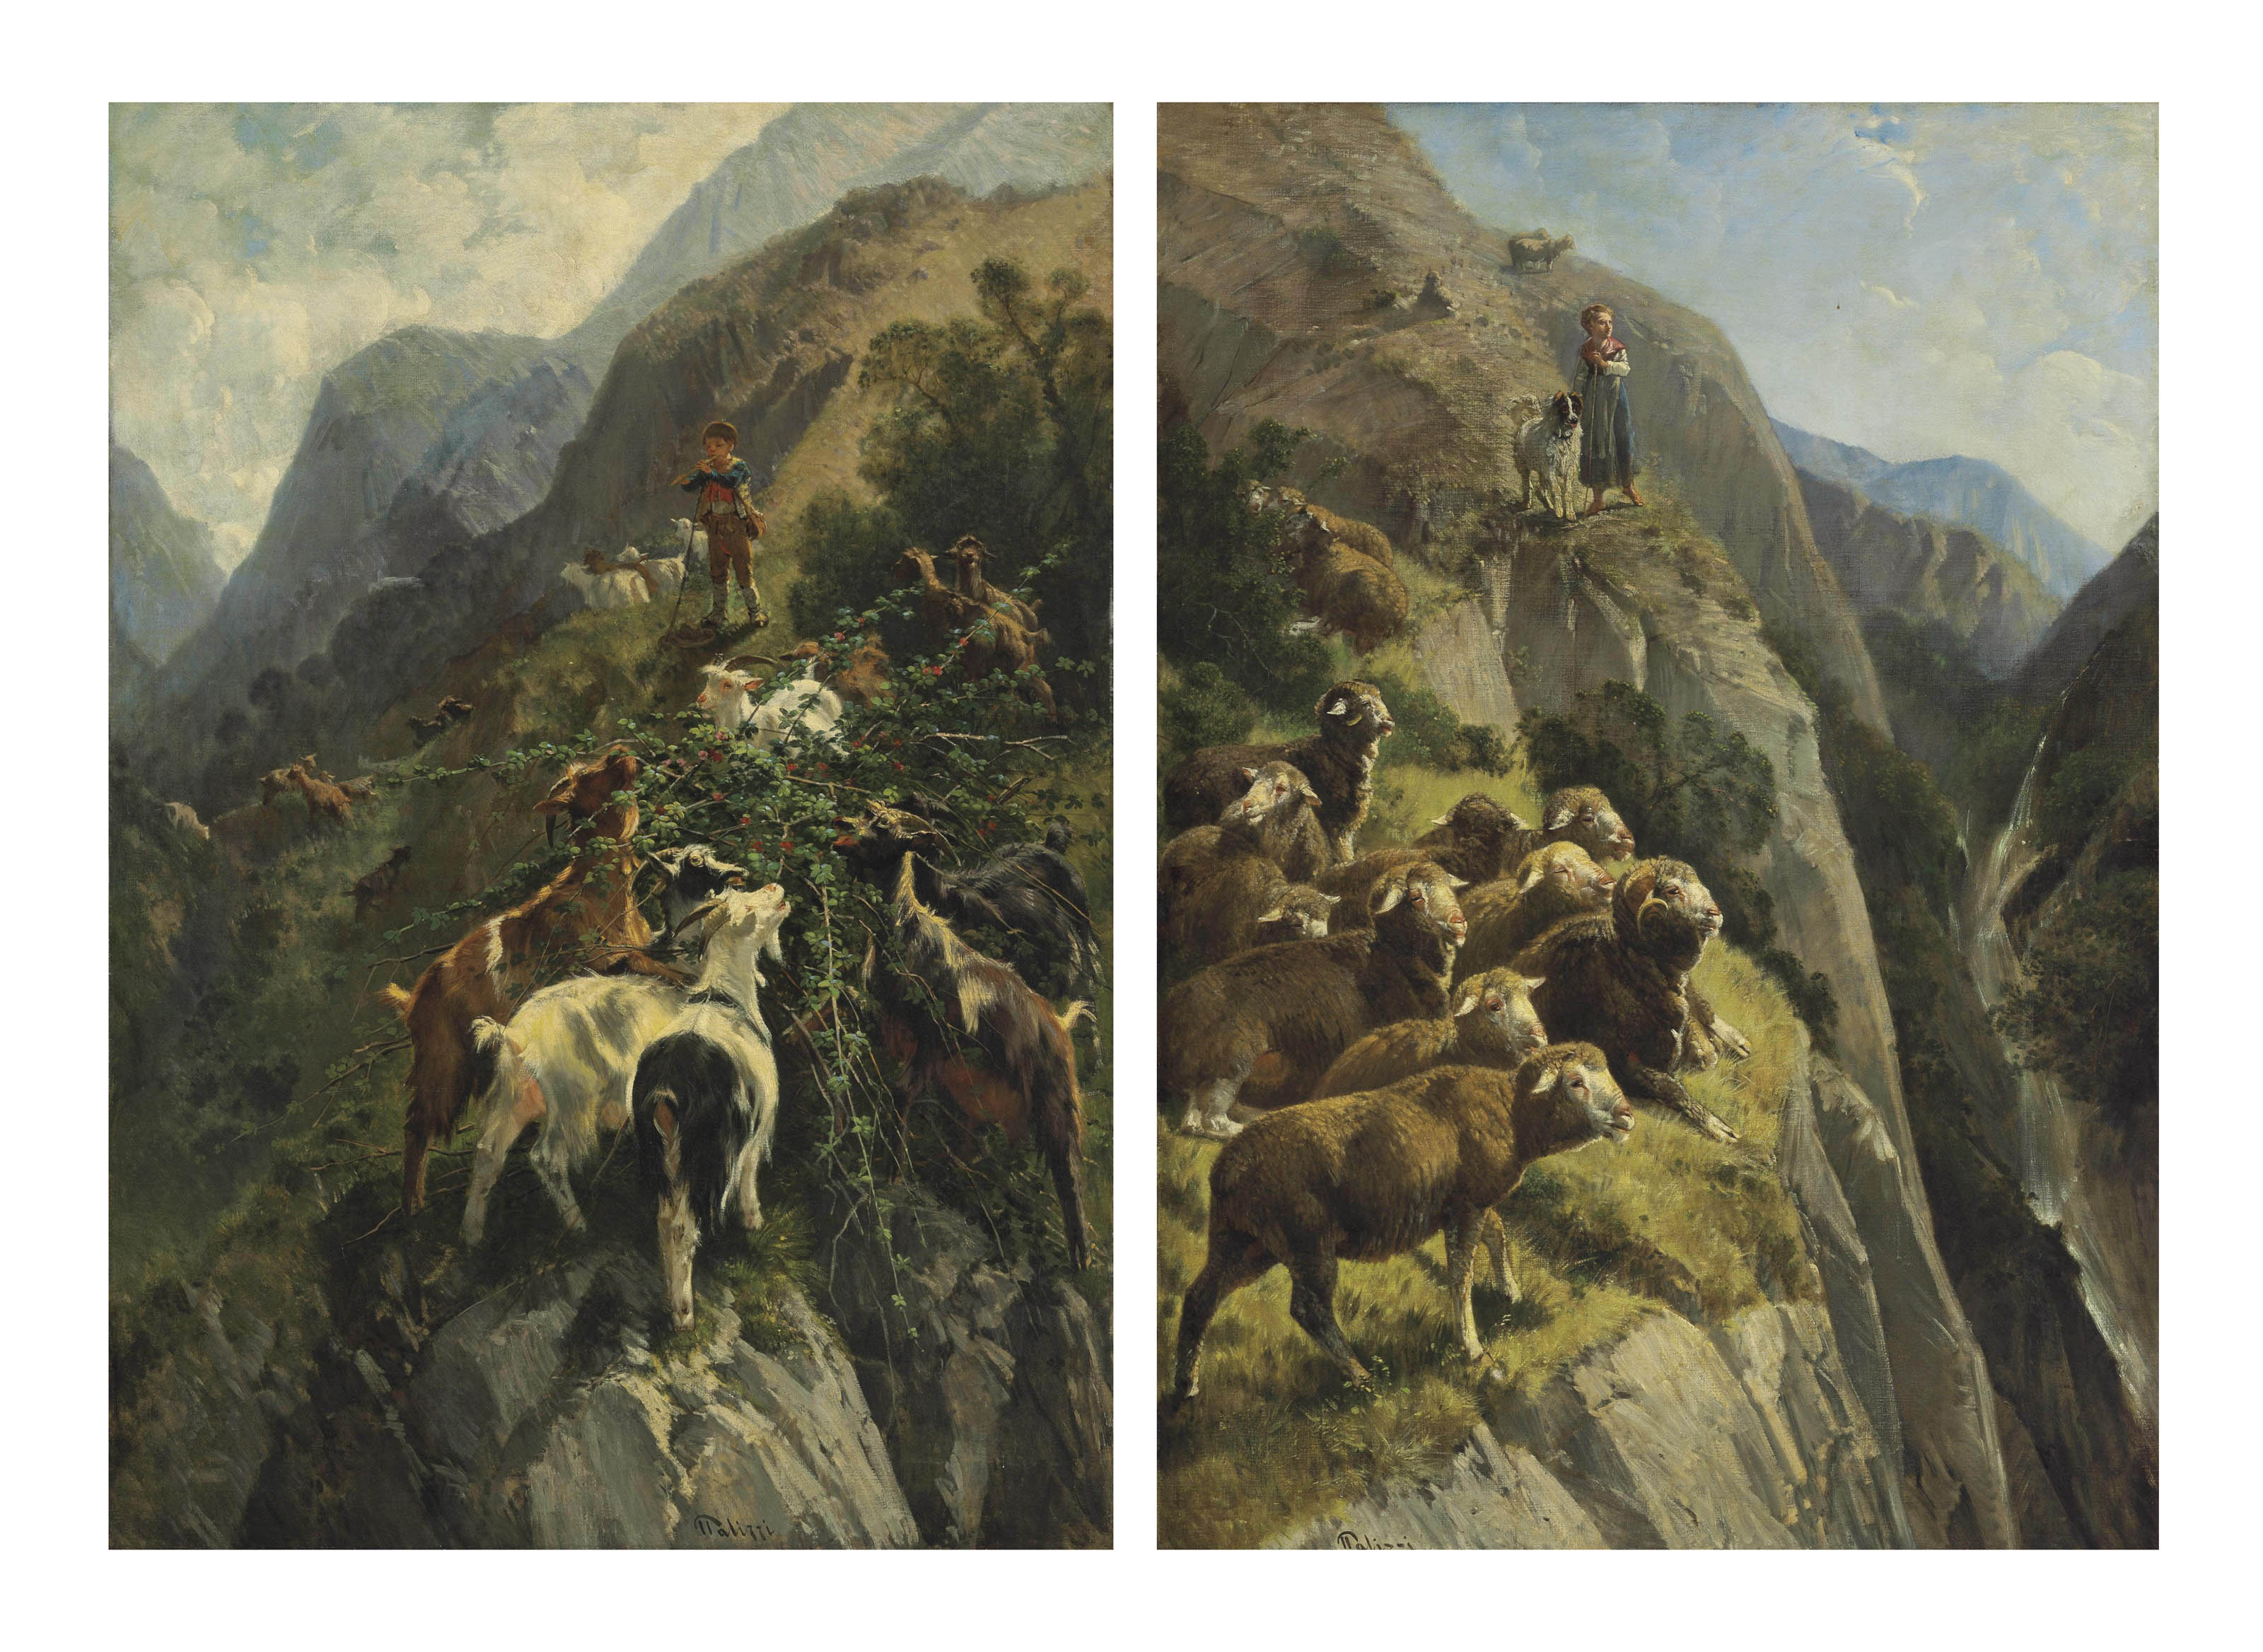 A Shepherdess with her Flock in the Mountains; and A Shepherd with his Goats in the Mountains